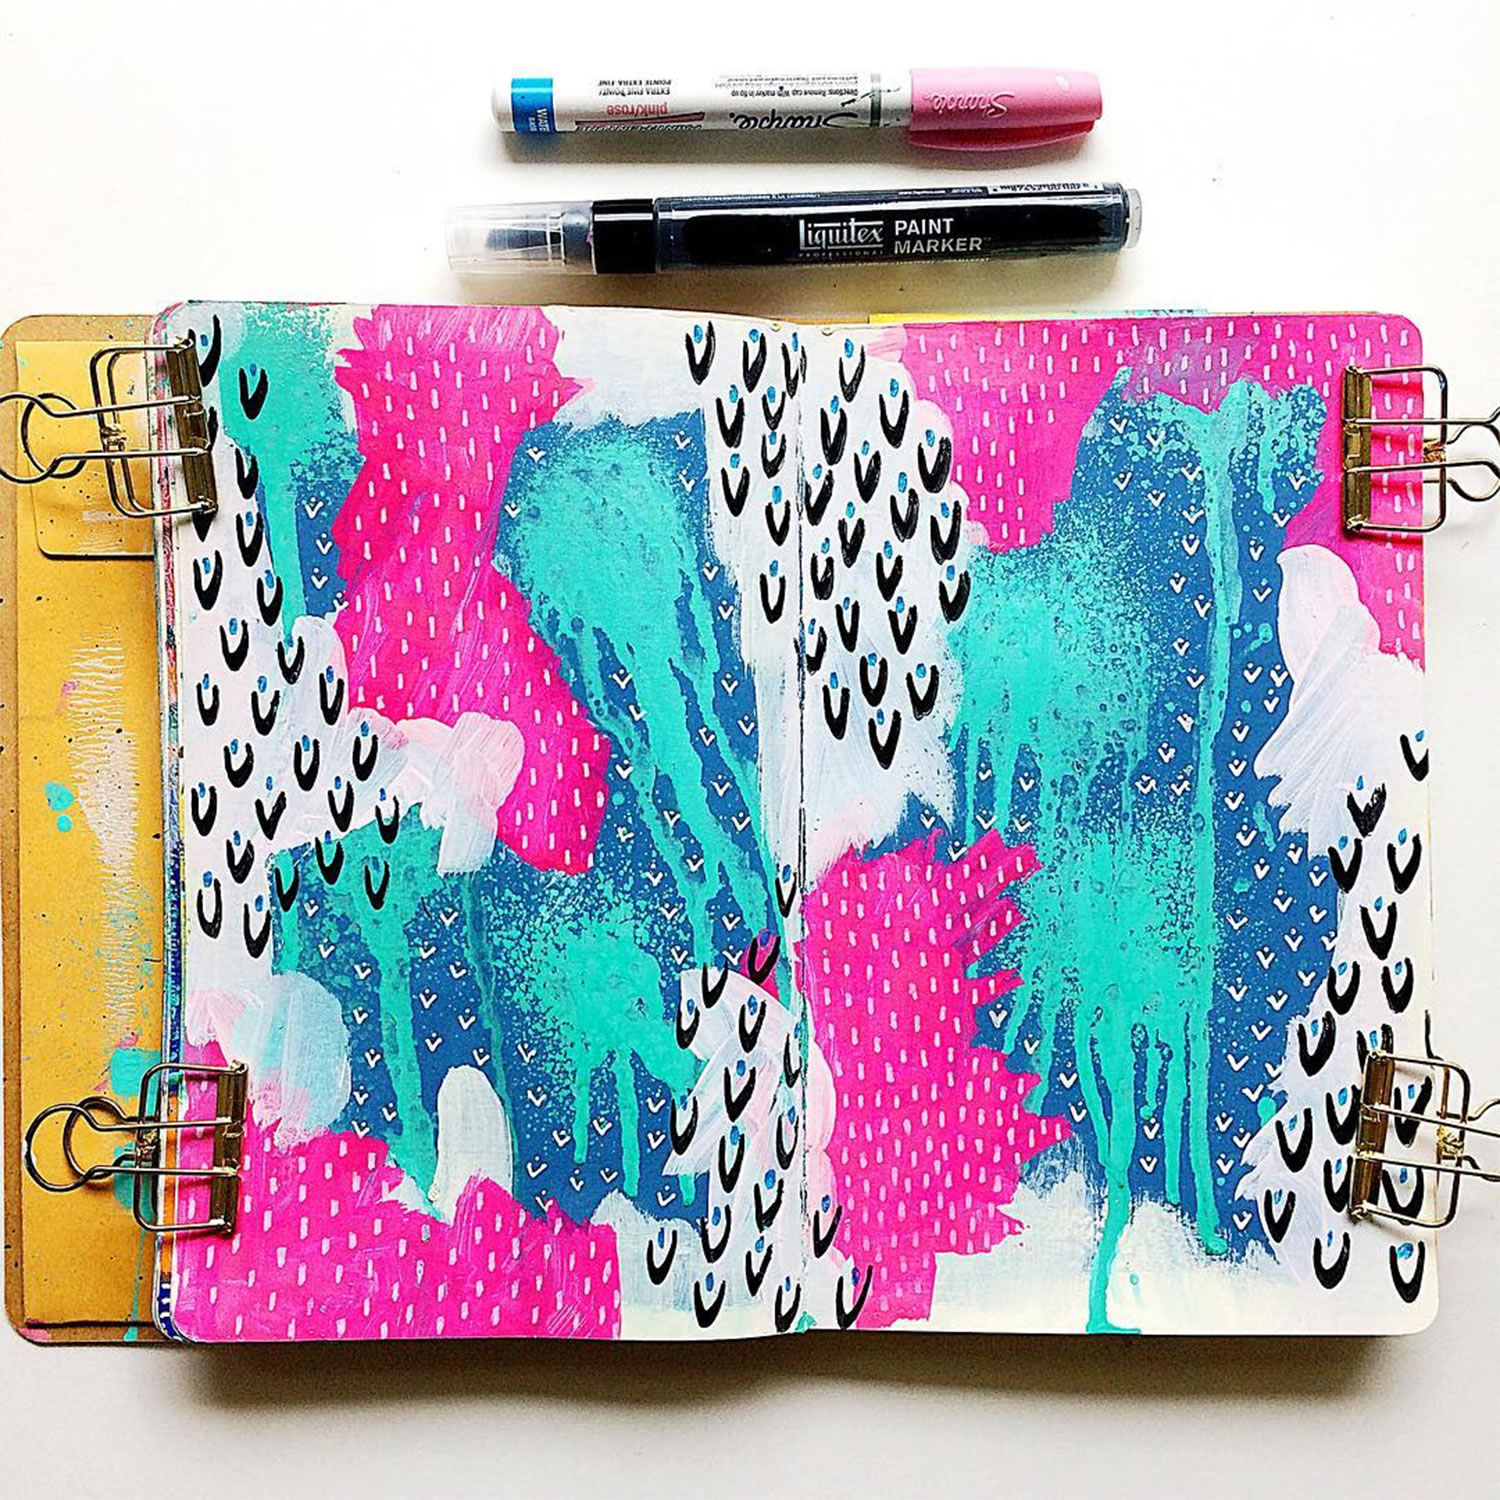 Artists Who Use Their Sketchbook as Handheld Galleries